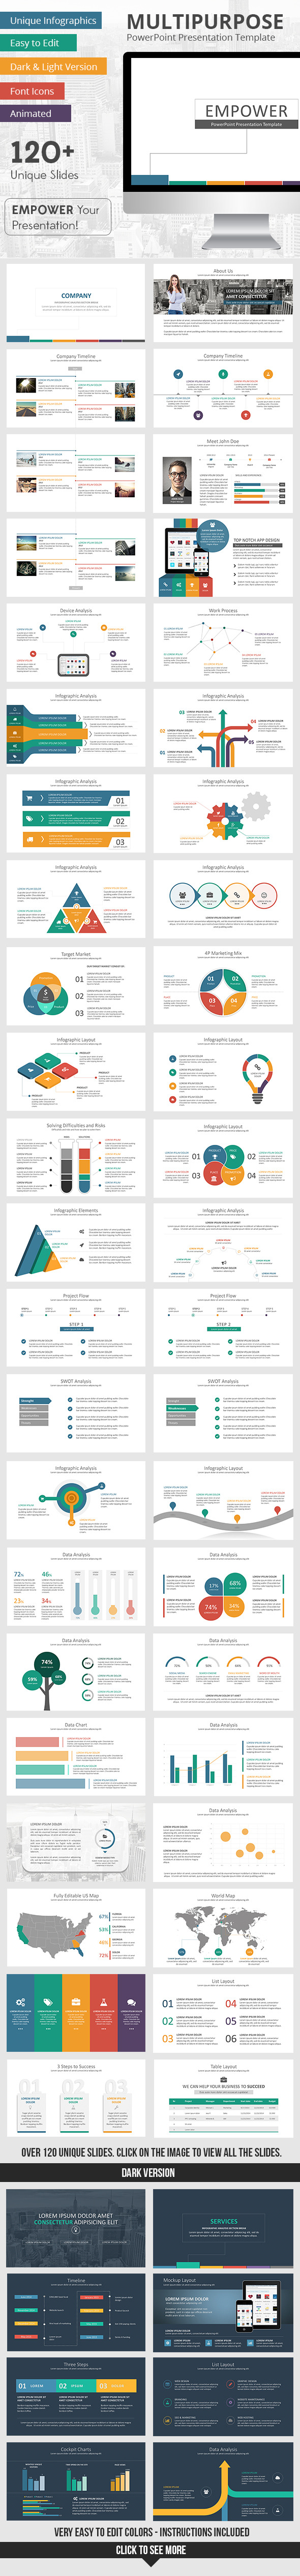 Empower PowerPoint Presentation Template - Business PowerPoint Templates